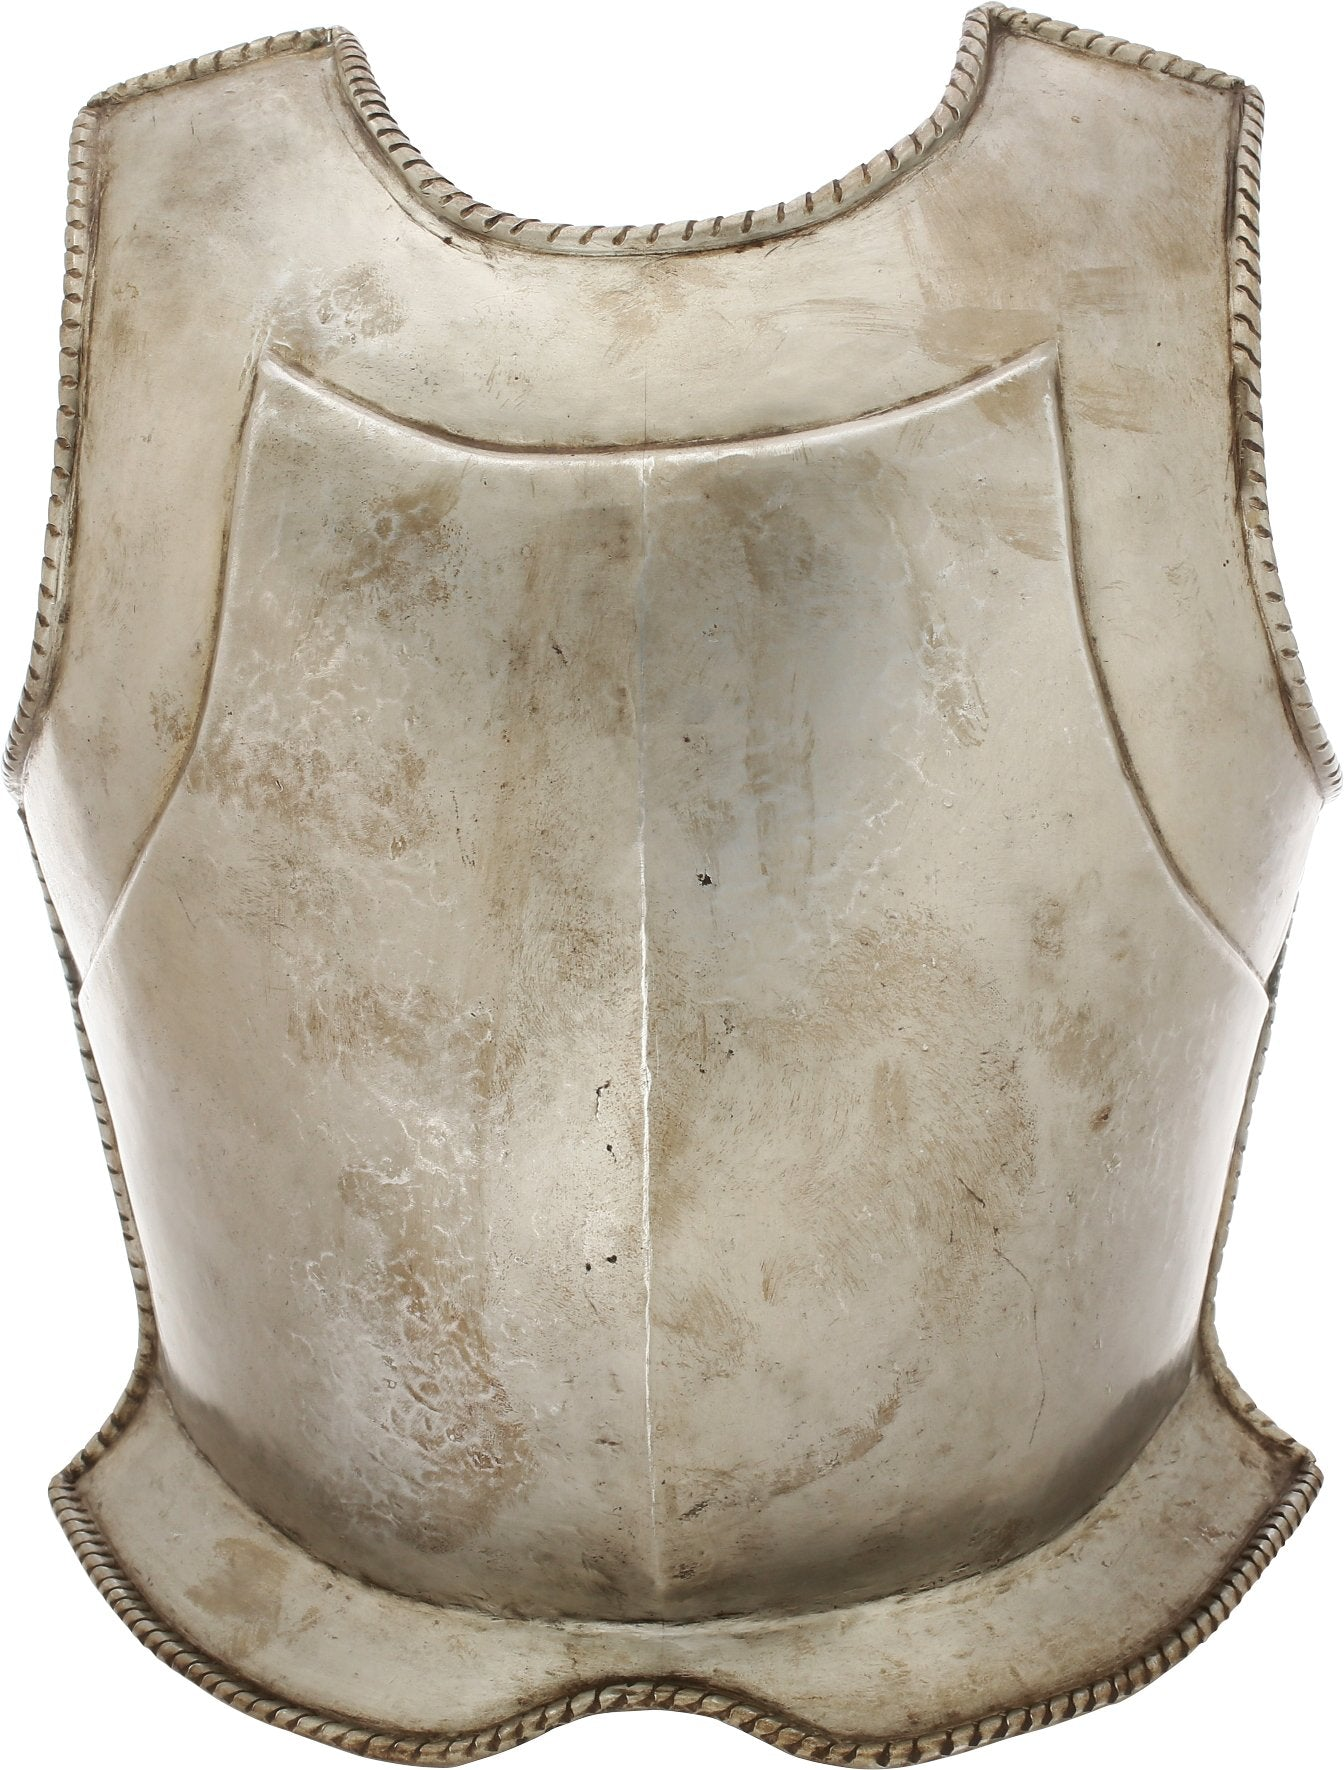 VICTORIAN COPY OF A GERMAN BREASTPLATE OF THE MID 16TH CENTURY